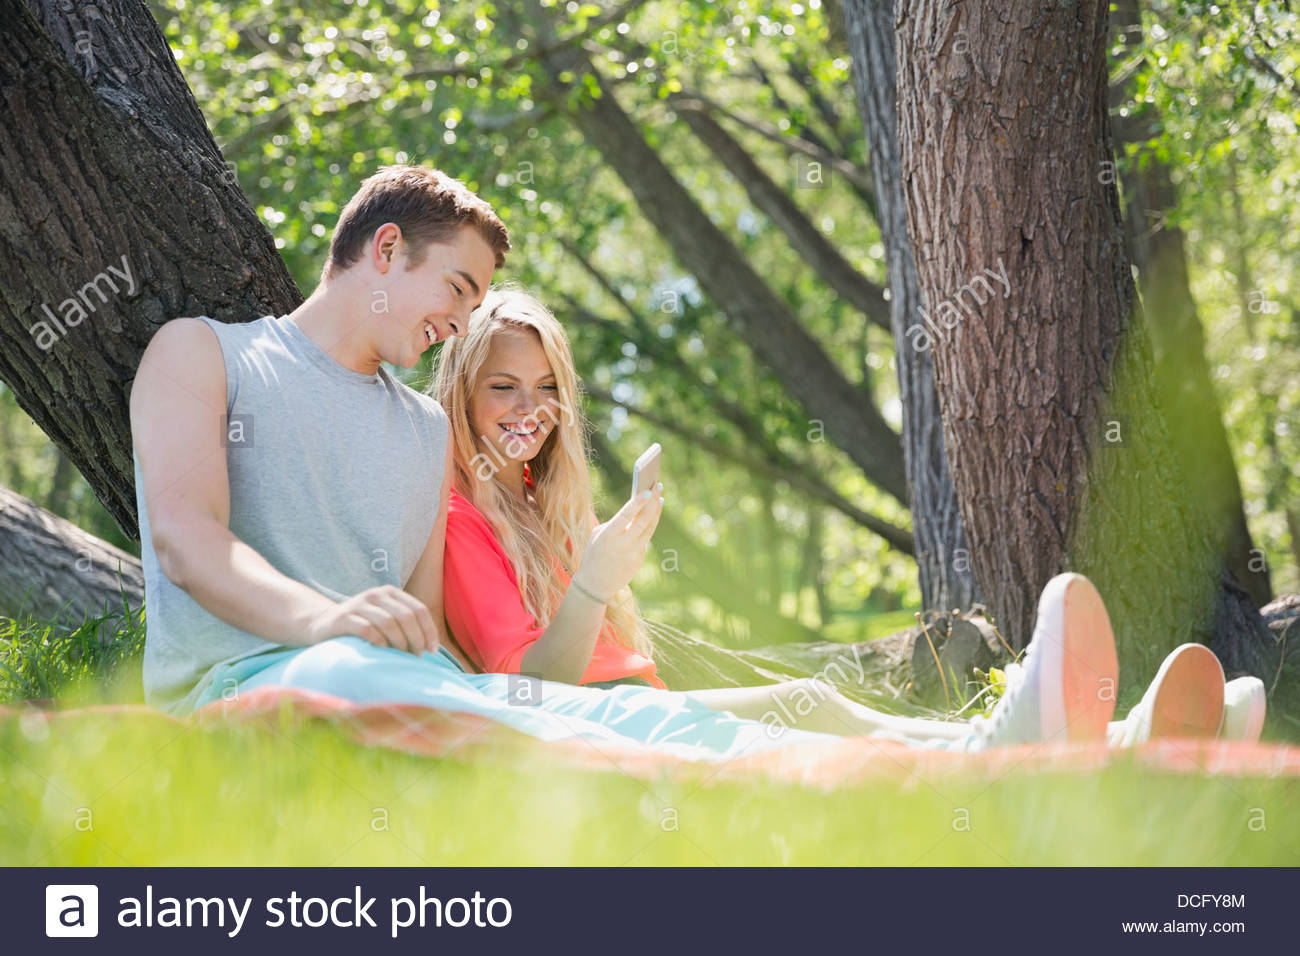 Teens using mobile phone outdoors Stock Photo